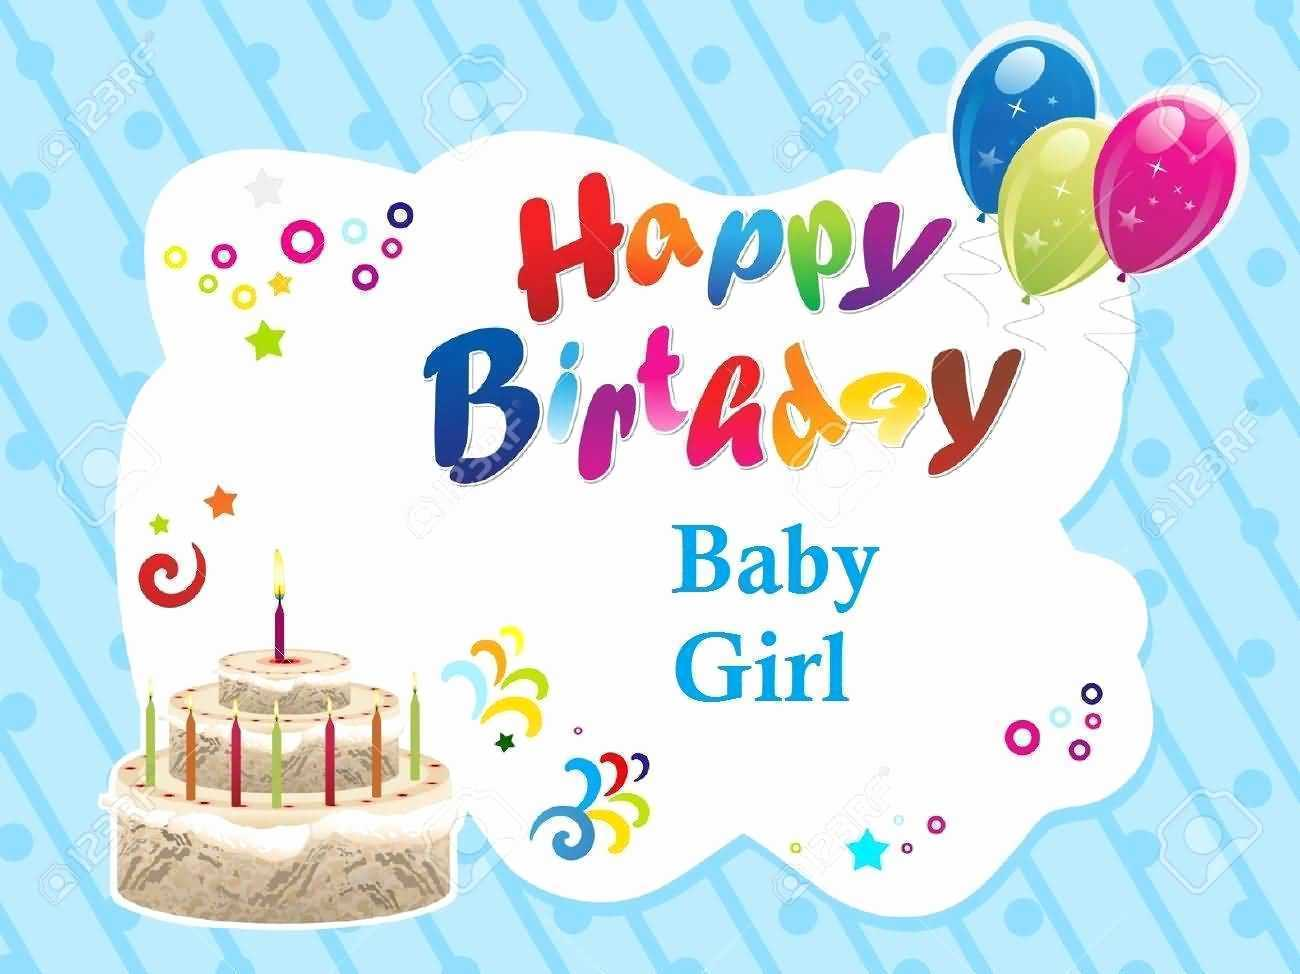 happy birthday baby girl images ; happy-birthday-images-with-baby-beautiful-33-cute-baby-girl-birthday-wishes-picture-image-of-happy-birthday-images-with-baby